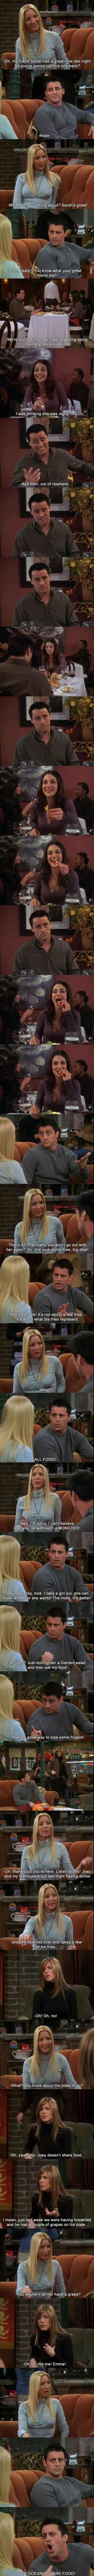 I am Joey. Joey is me. We are one and the same